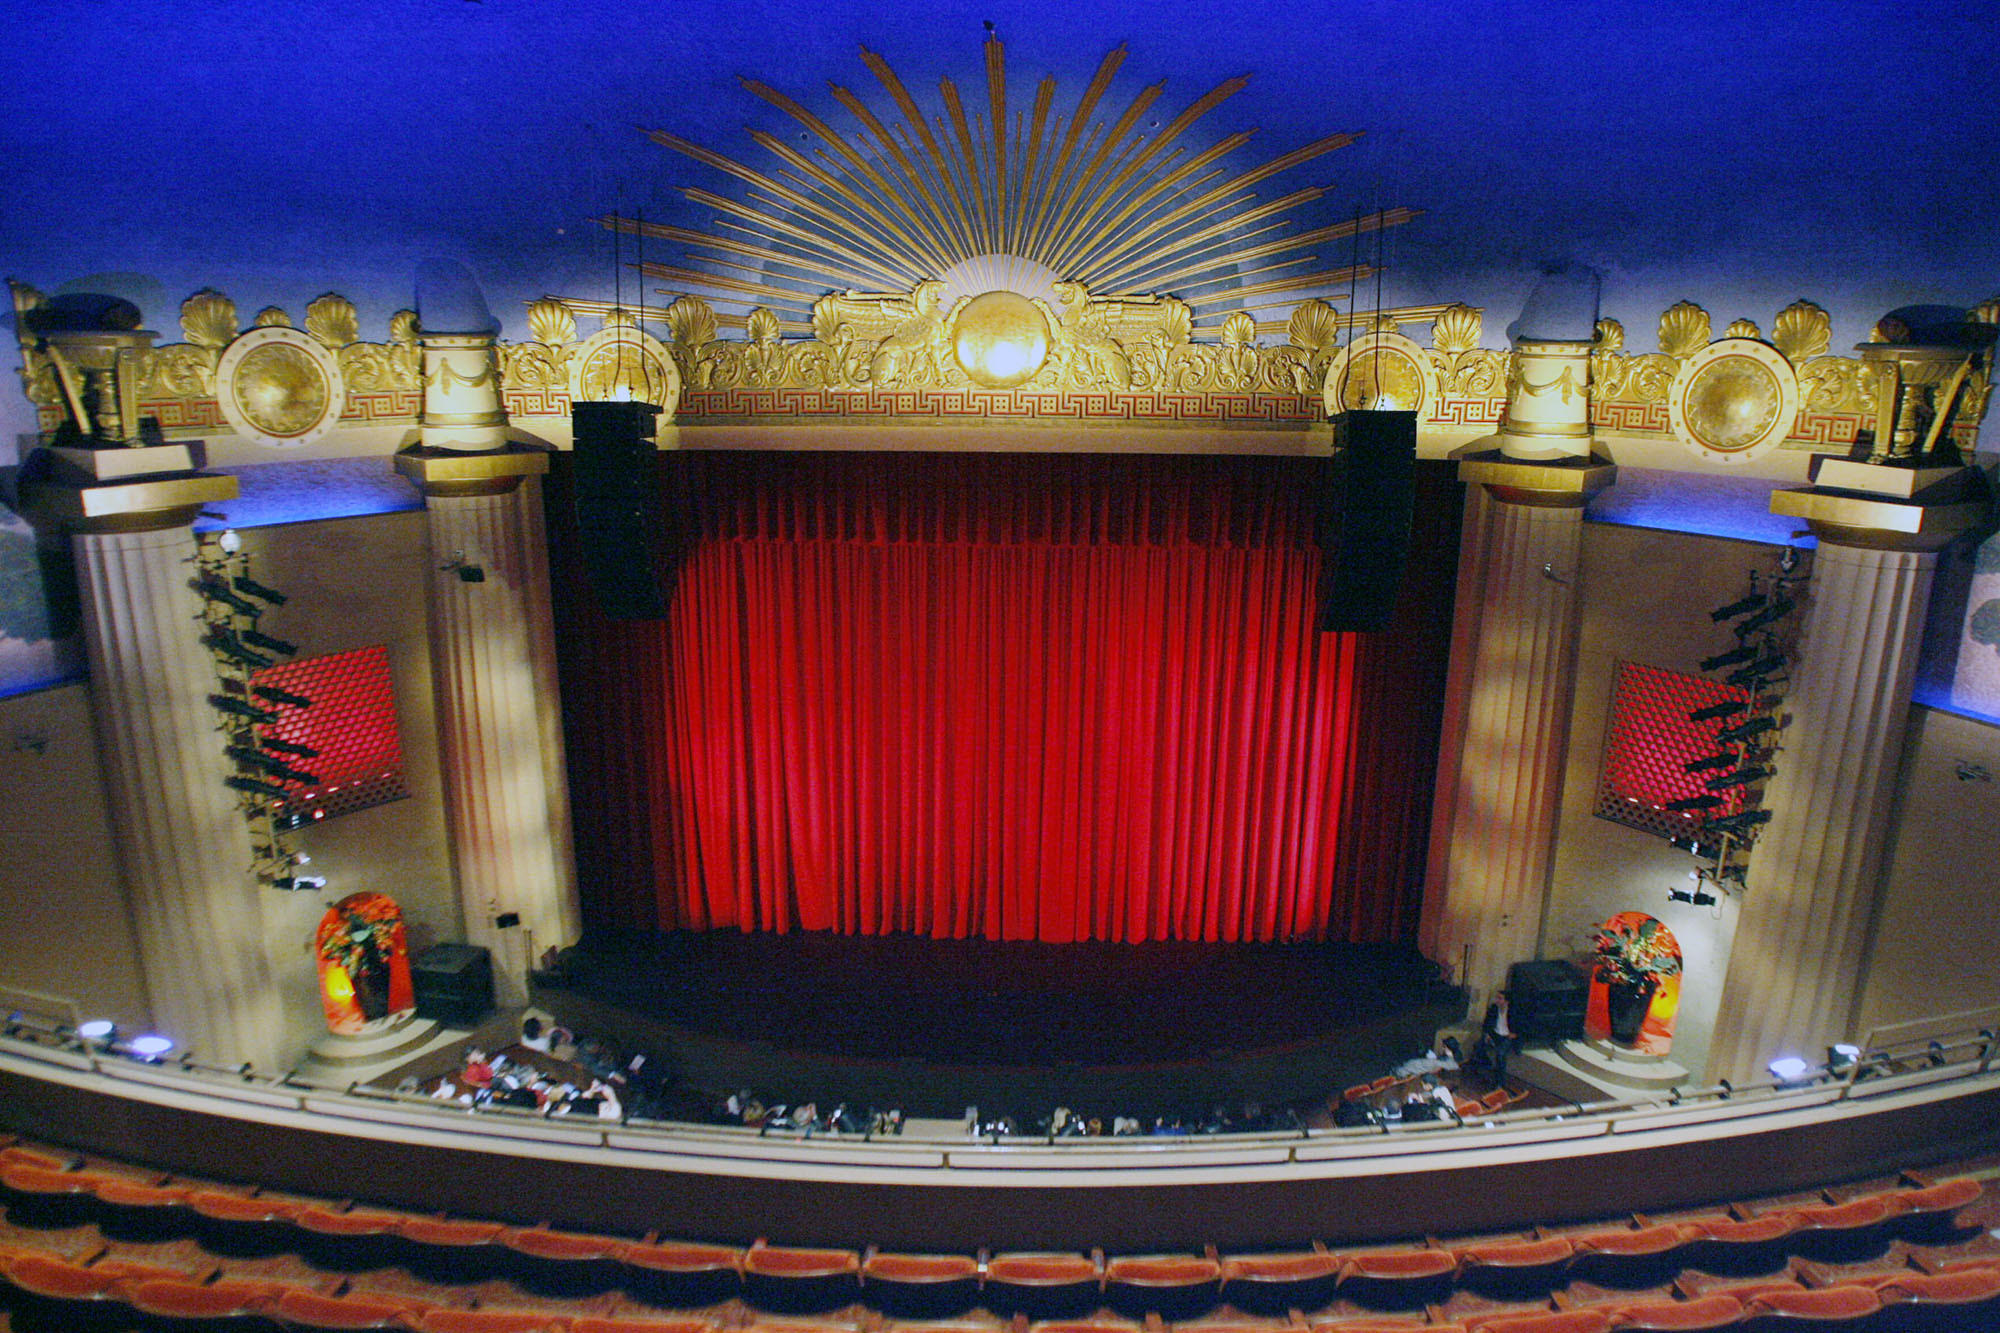 The Alex Theatre in Glendale, pictured on Friday, December 28, 2012.